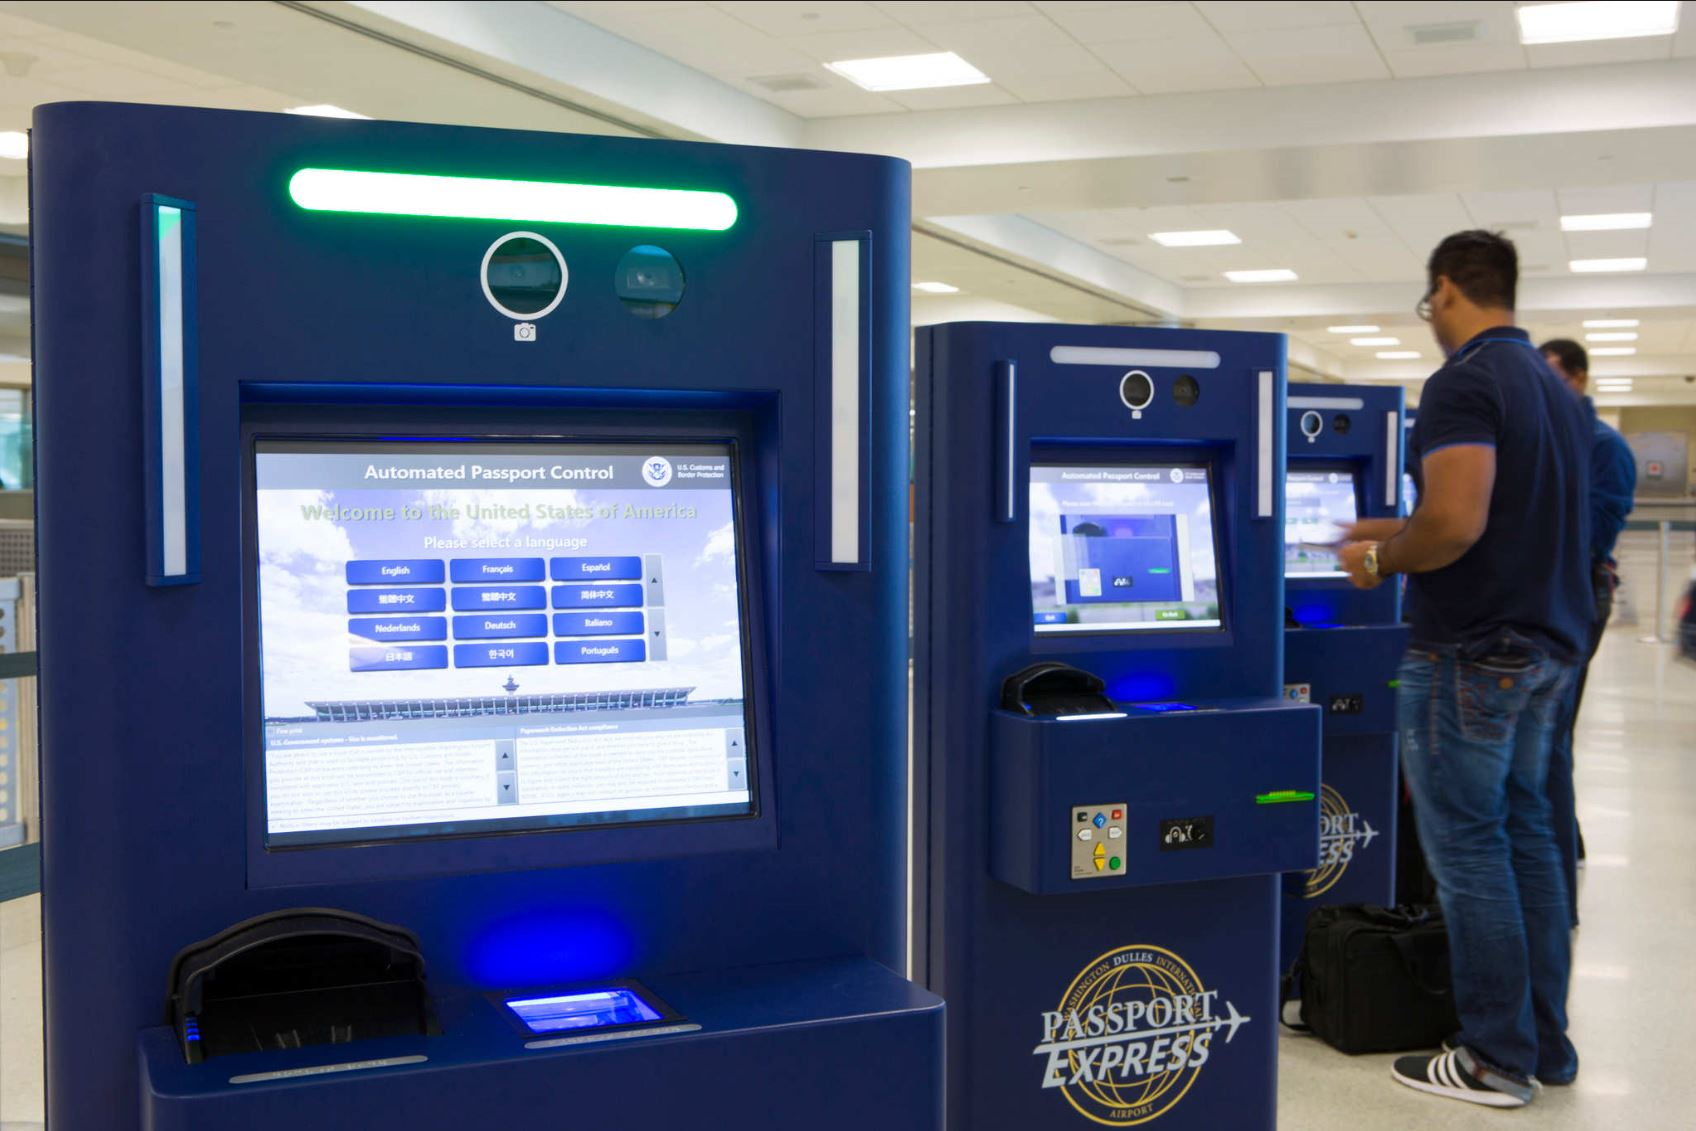 What Are Automated Passport Control And Mobile Passport